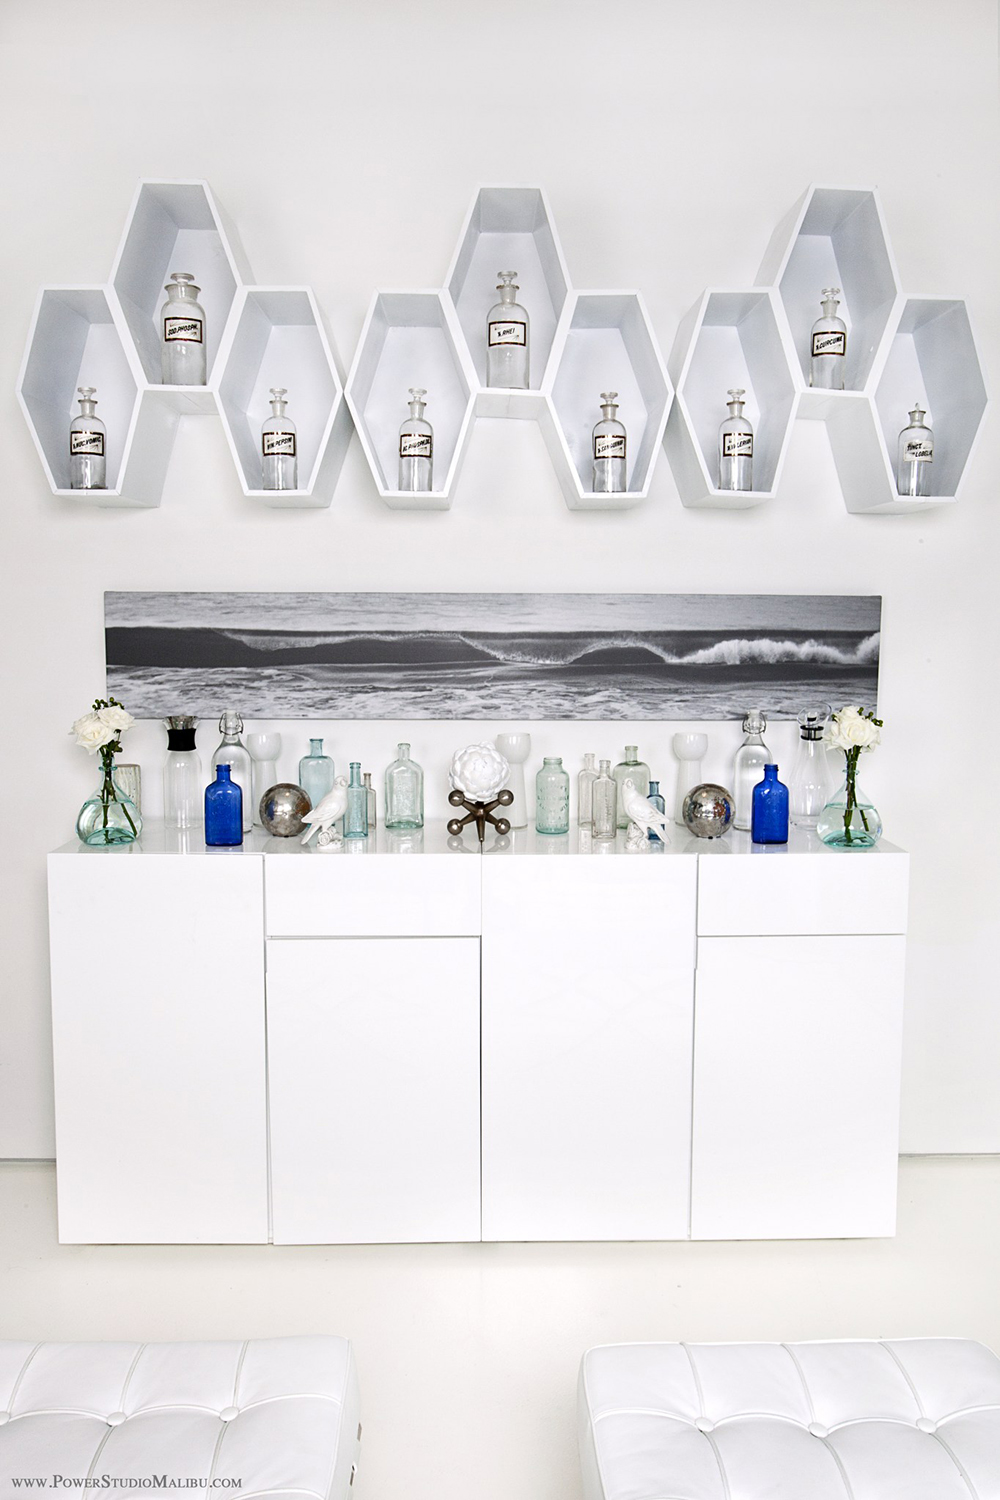 The spa's beach-inspired decor makes it the ultimate seaside sanctuary.